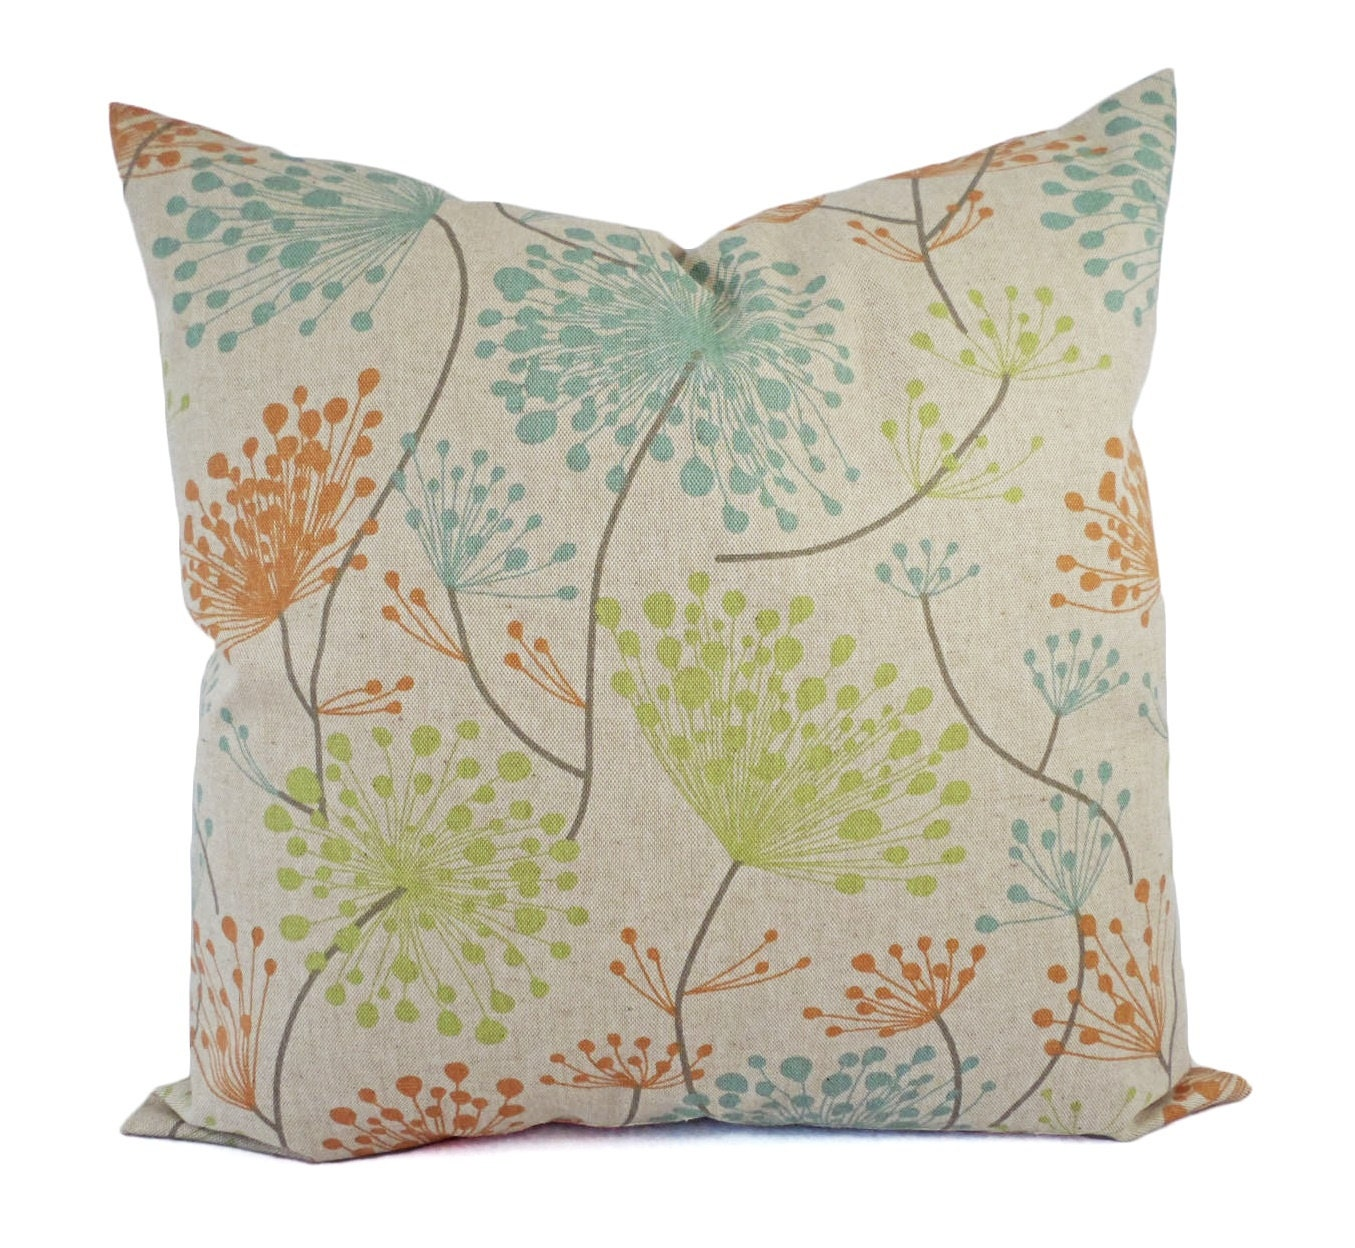 Decorative Pillows Blue And Orange : Orange Green and Blue Decorative Pillow Covers Two Floral